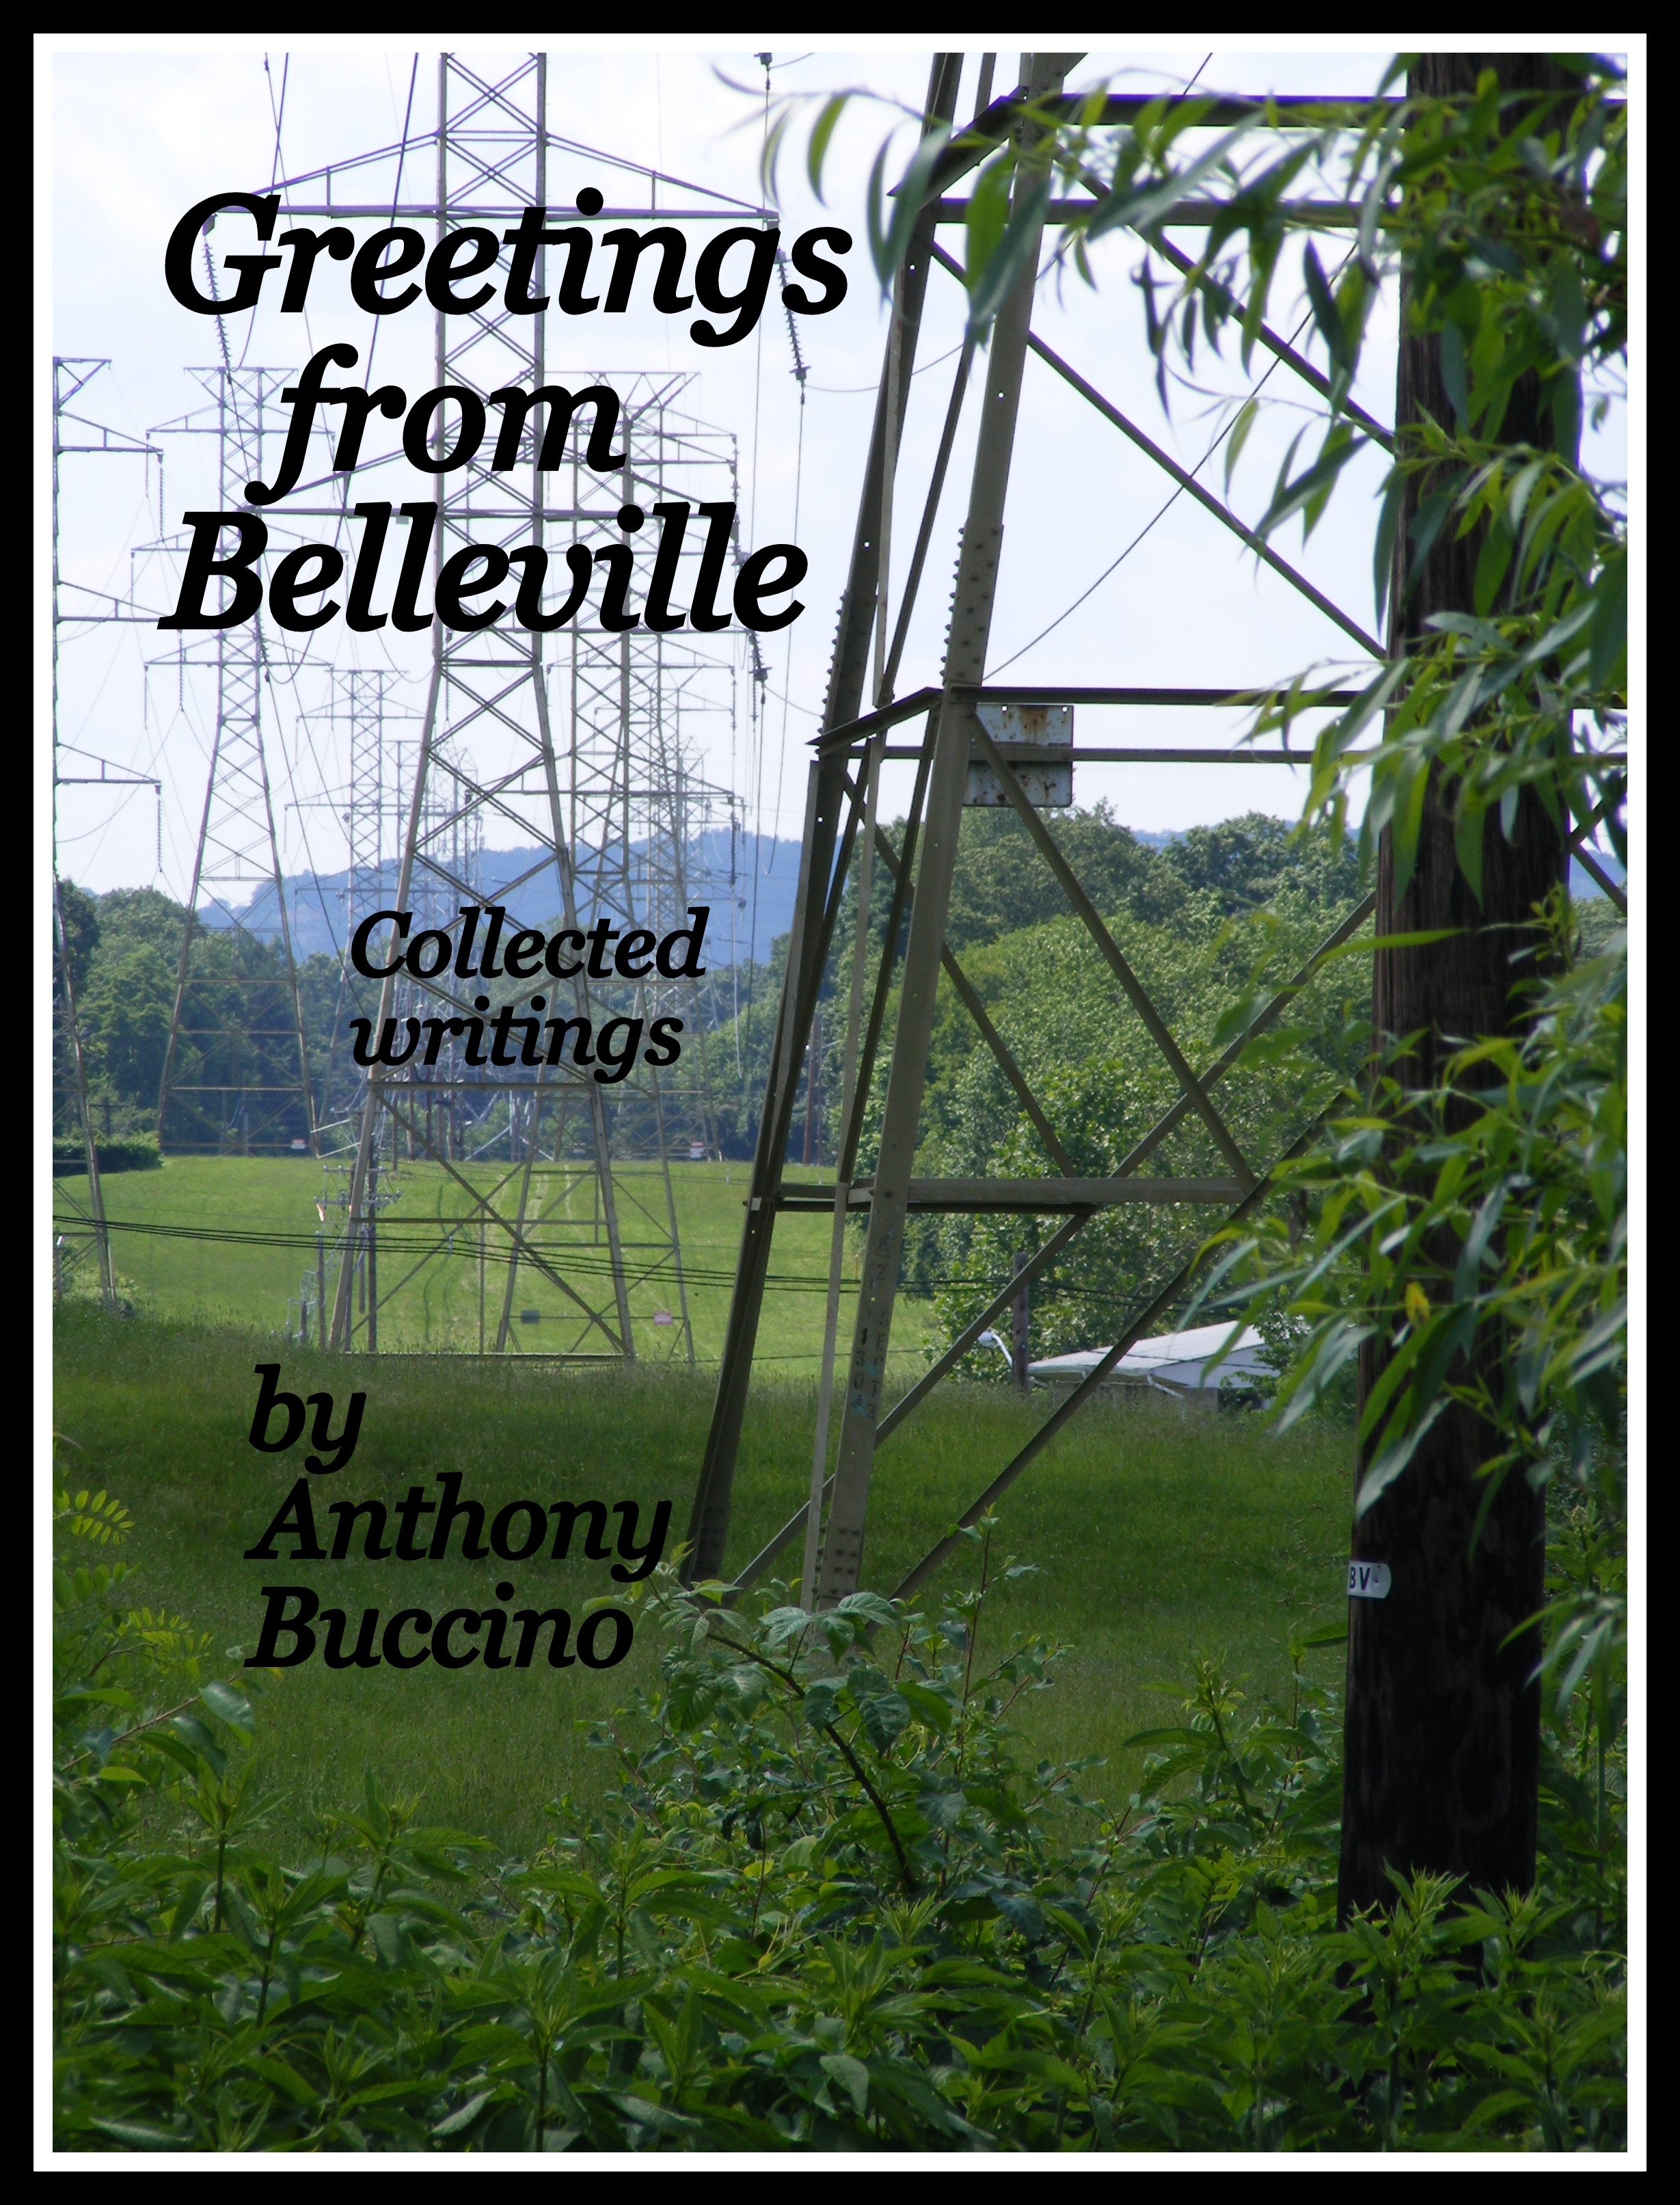 Greetings From Belleville, N.J. - Collected writings by Anthony Buccino